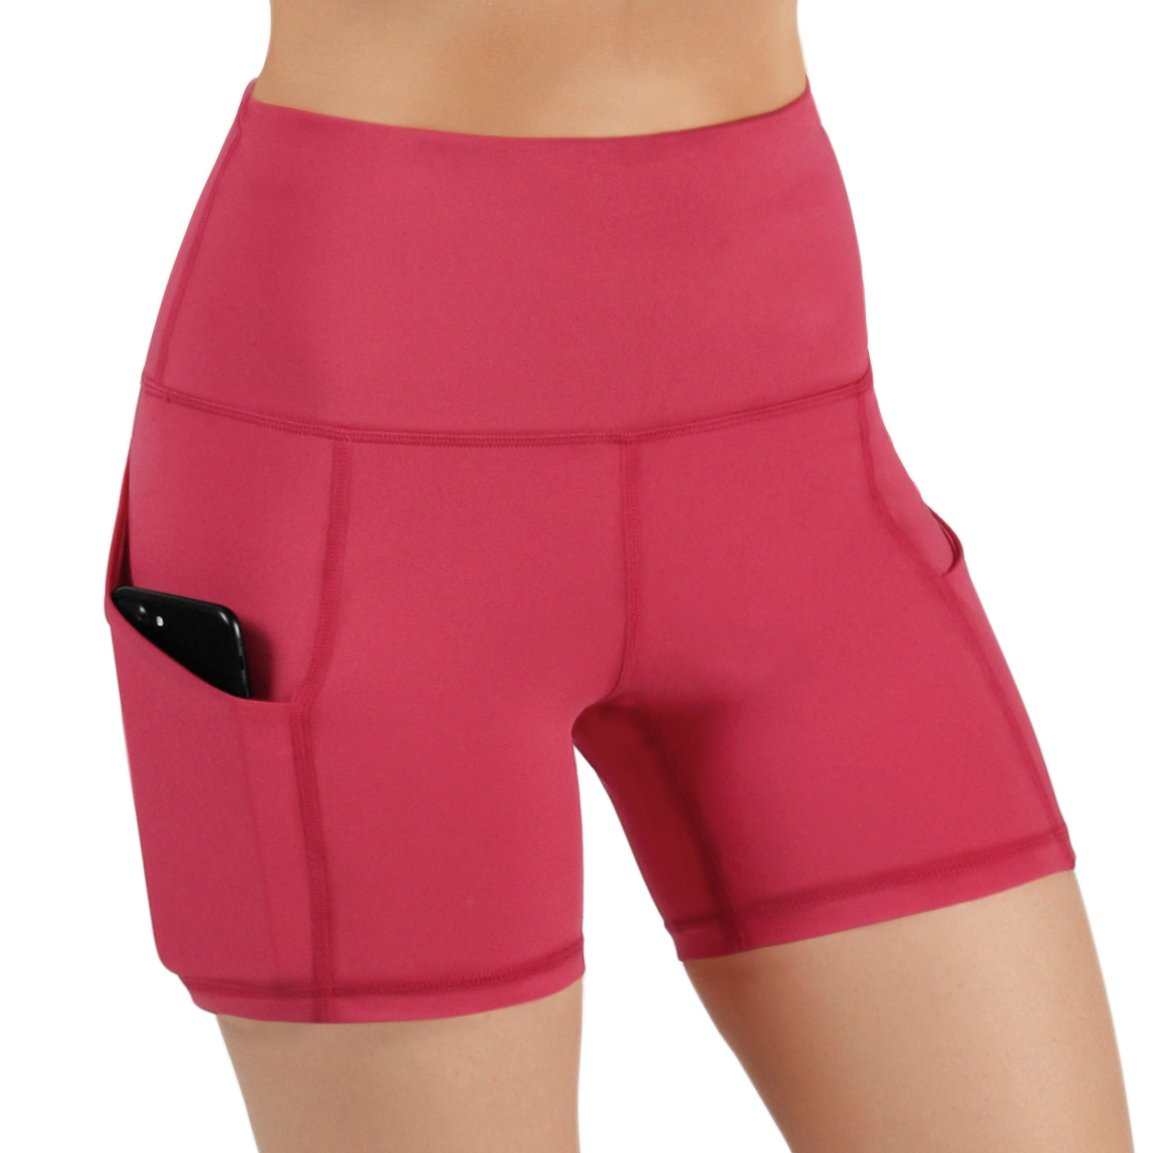 Yogapocketshots525coral ODODOS High Waist Out Pocket Yoga Short Tummy Control Workout Running Athletic Non SeeThrough Yoga Shorts